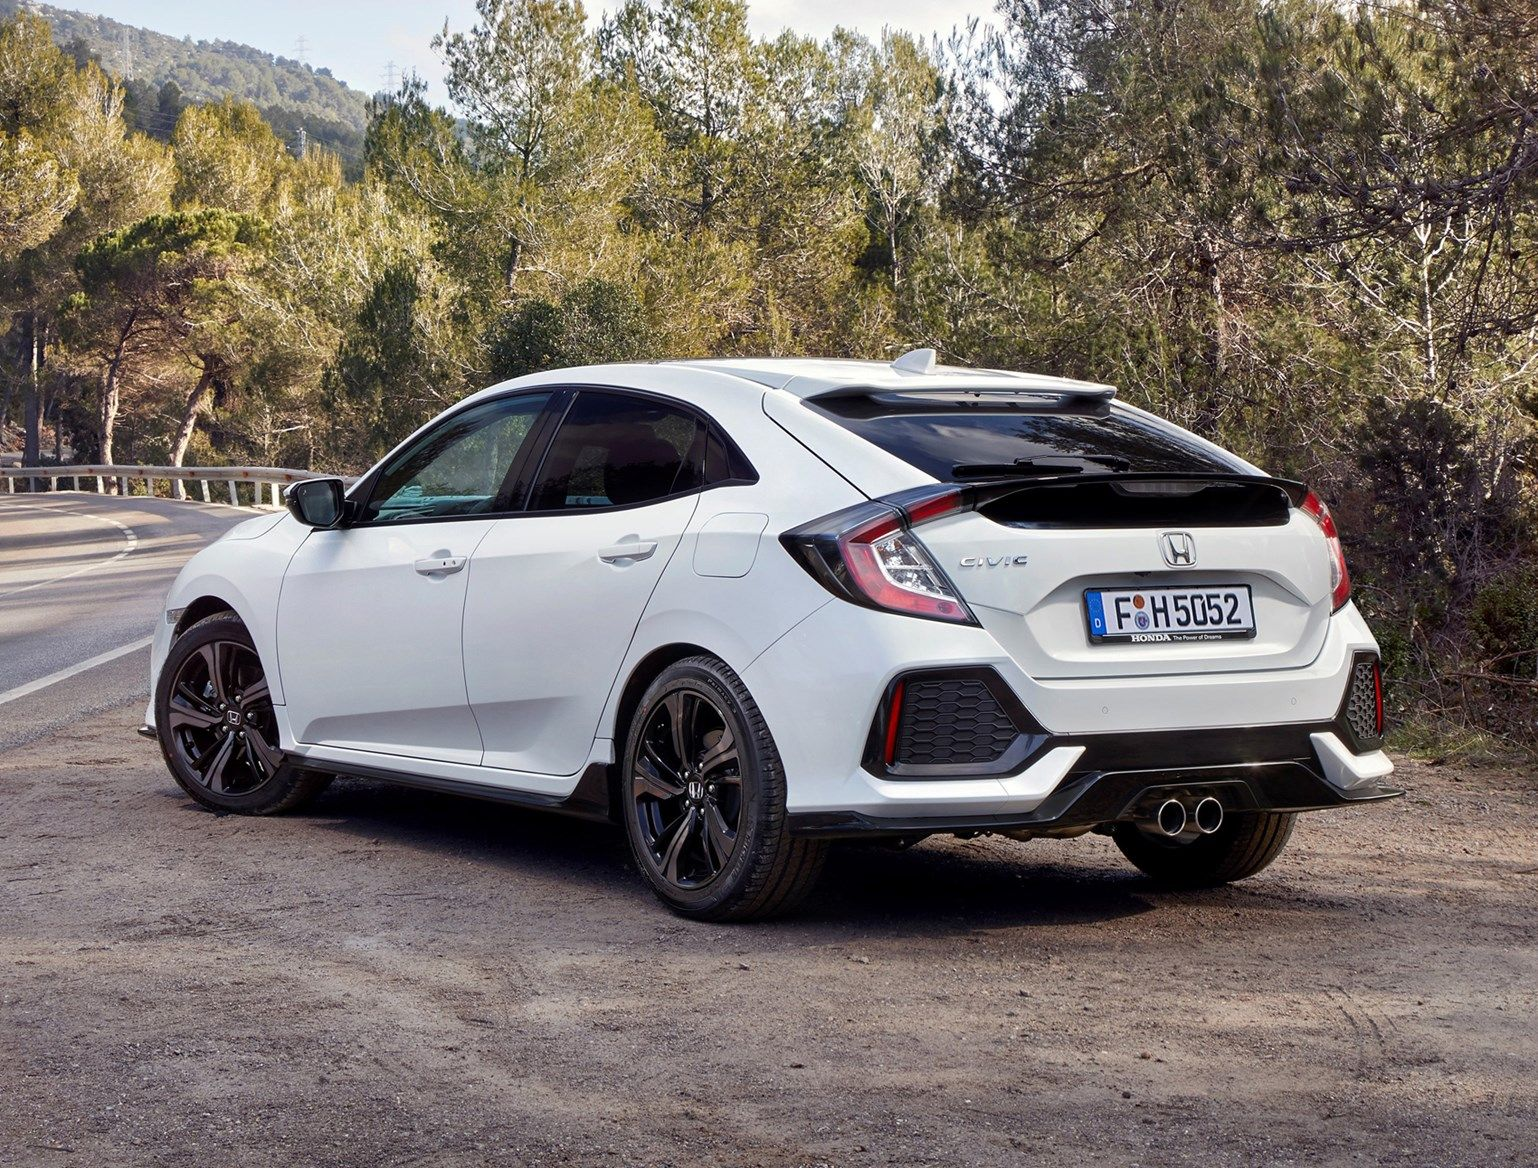 Honda Civic Hatchback 2017 Features Equipment And Accessories Parkers Civic Hatchback Honda Civic Hatchback Honda Civic